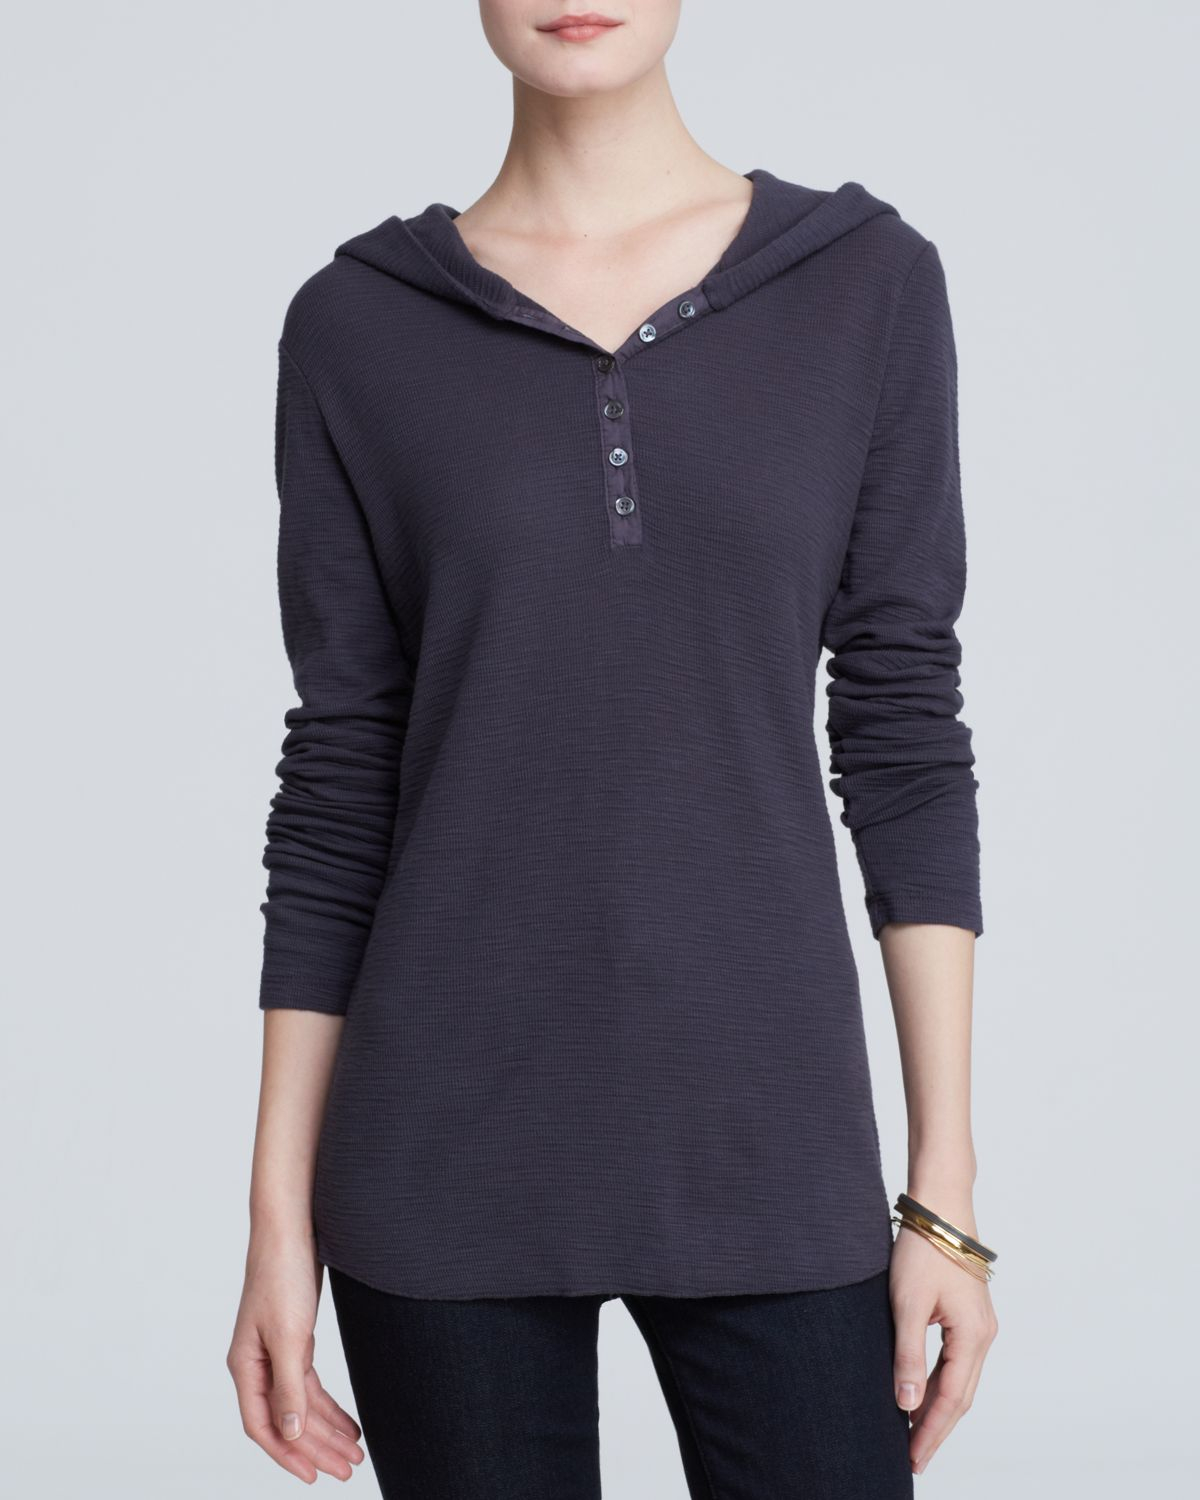 James perse hoodie thermal henley in blue lyst for James perse henley shirt